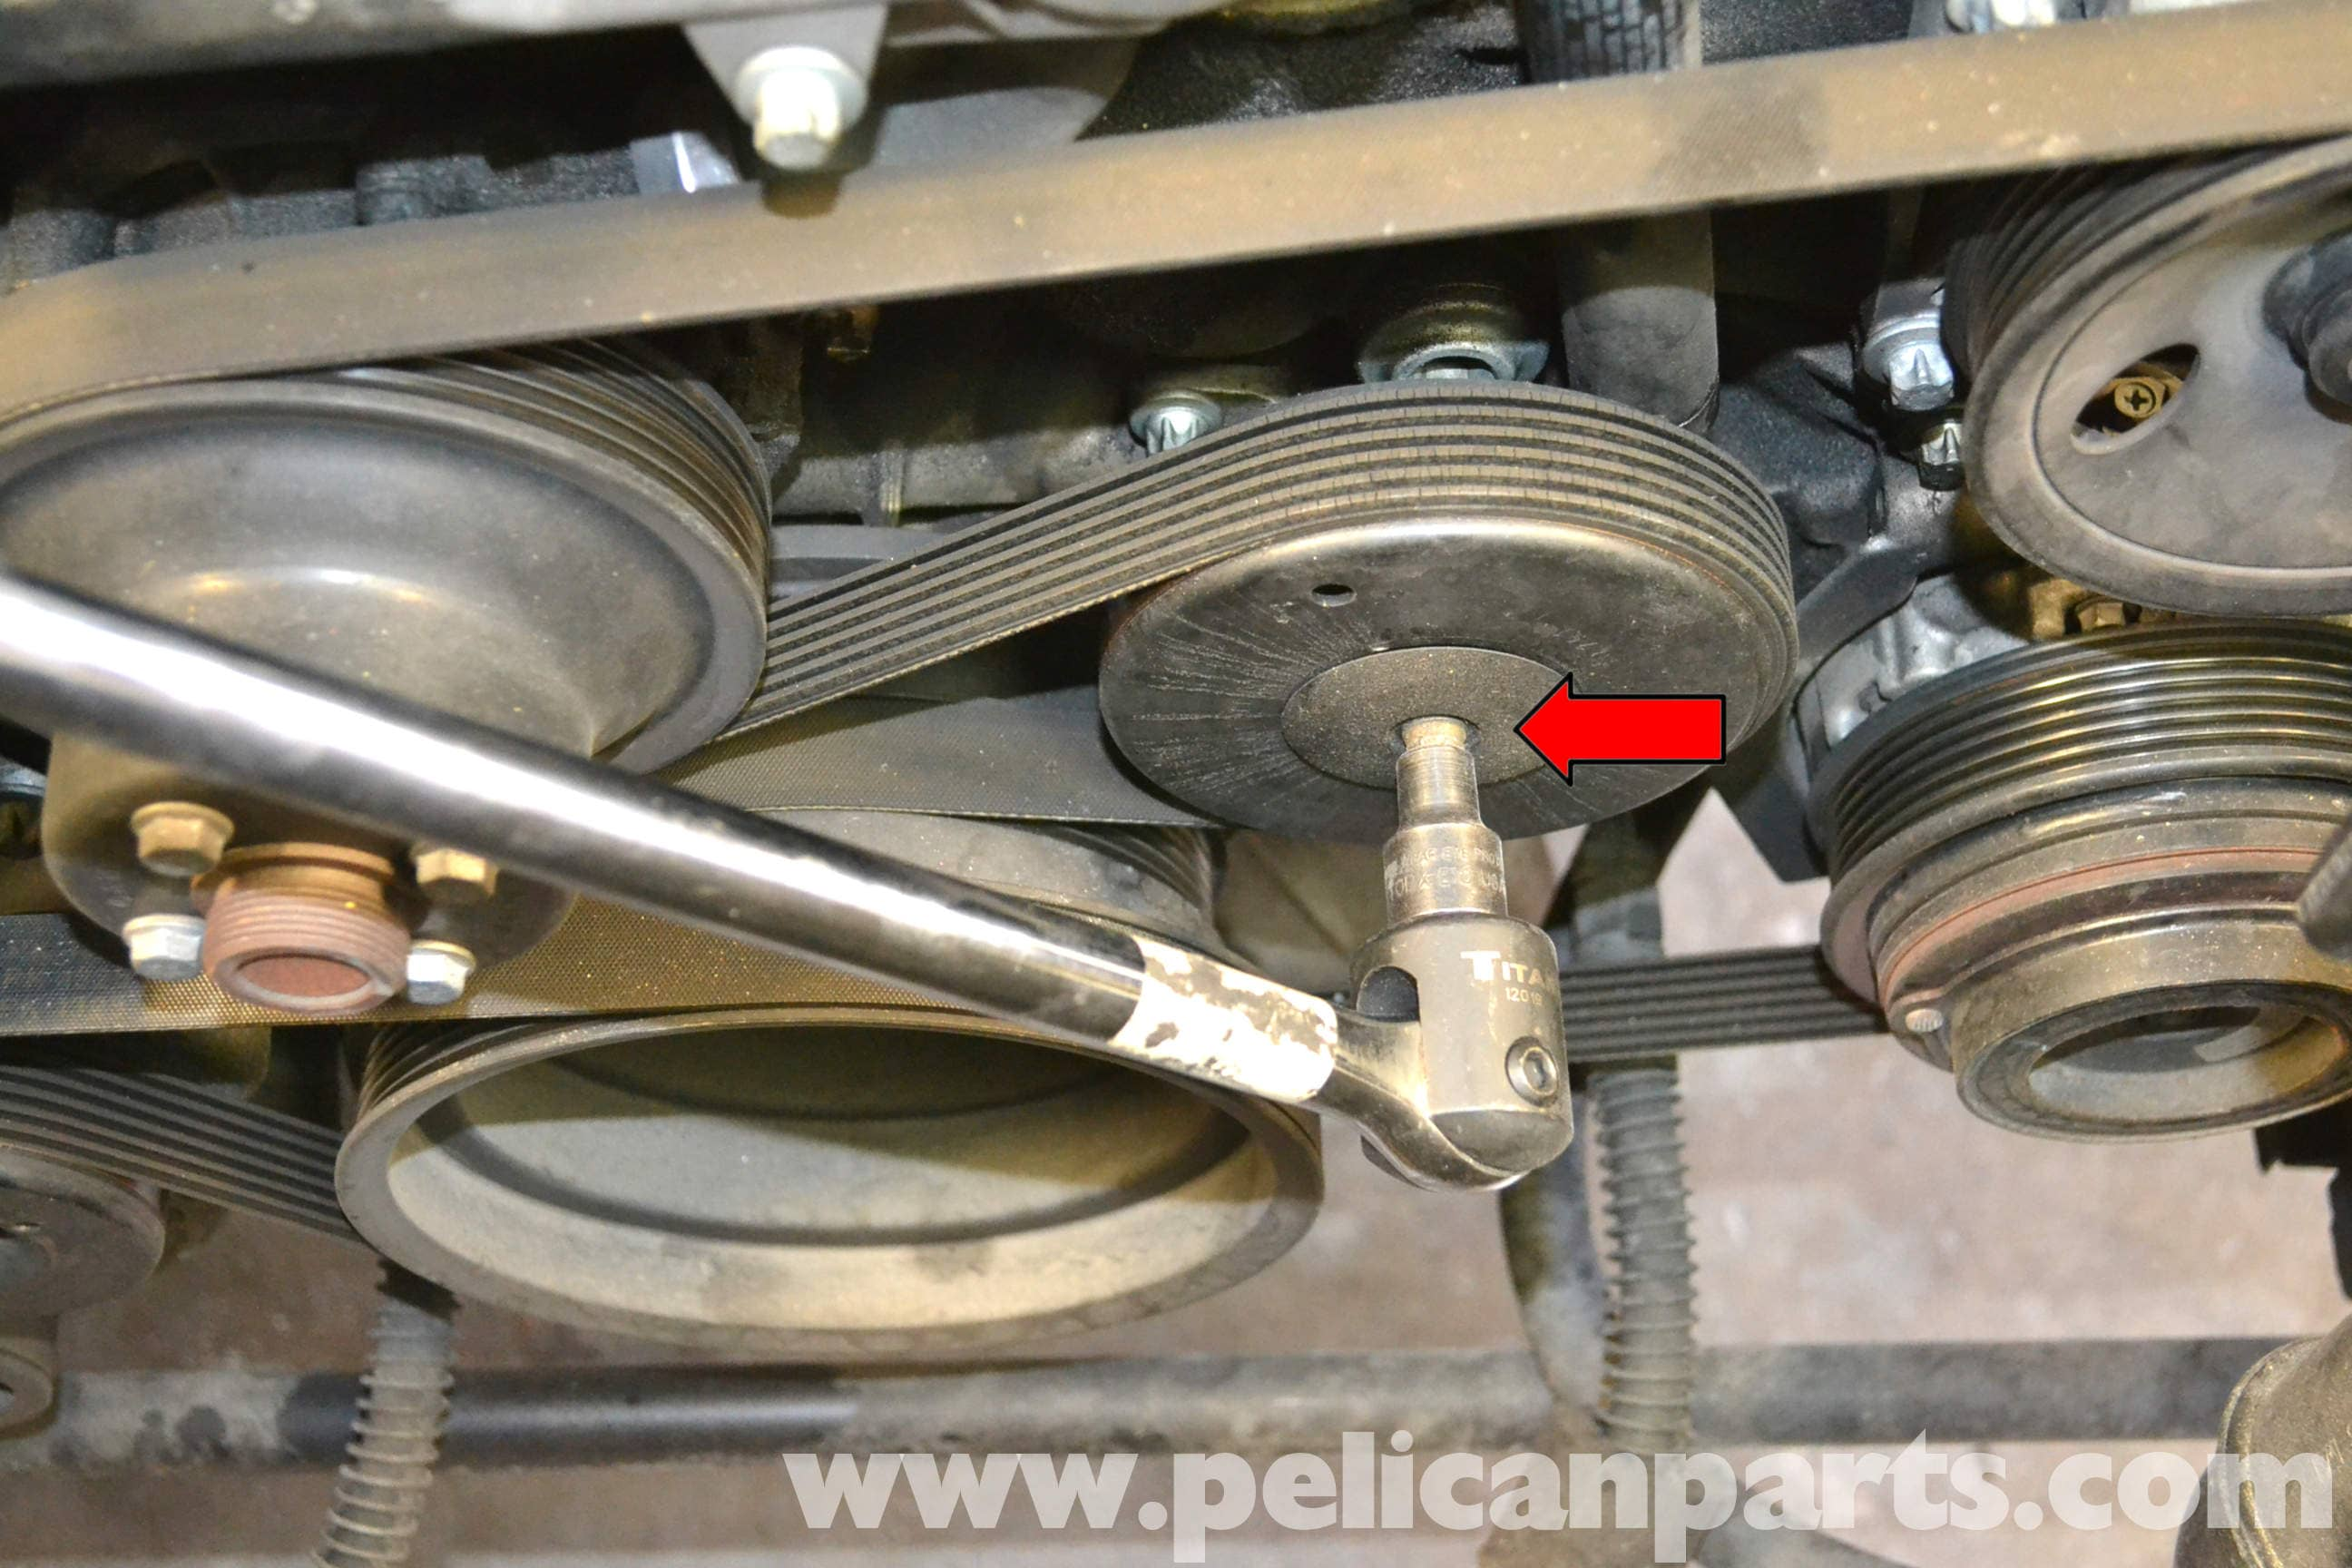 Mercedes Benz SLK 230 Belt Tensioner Replacement 1998